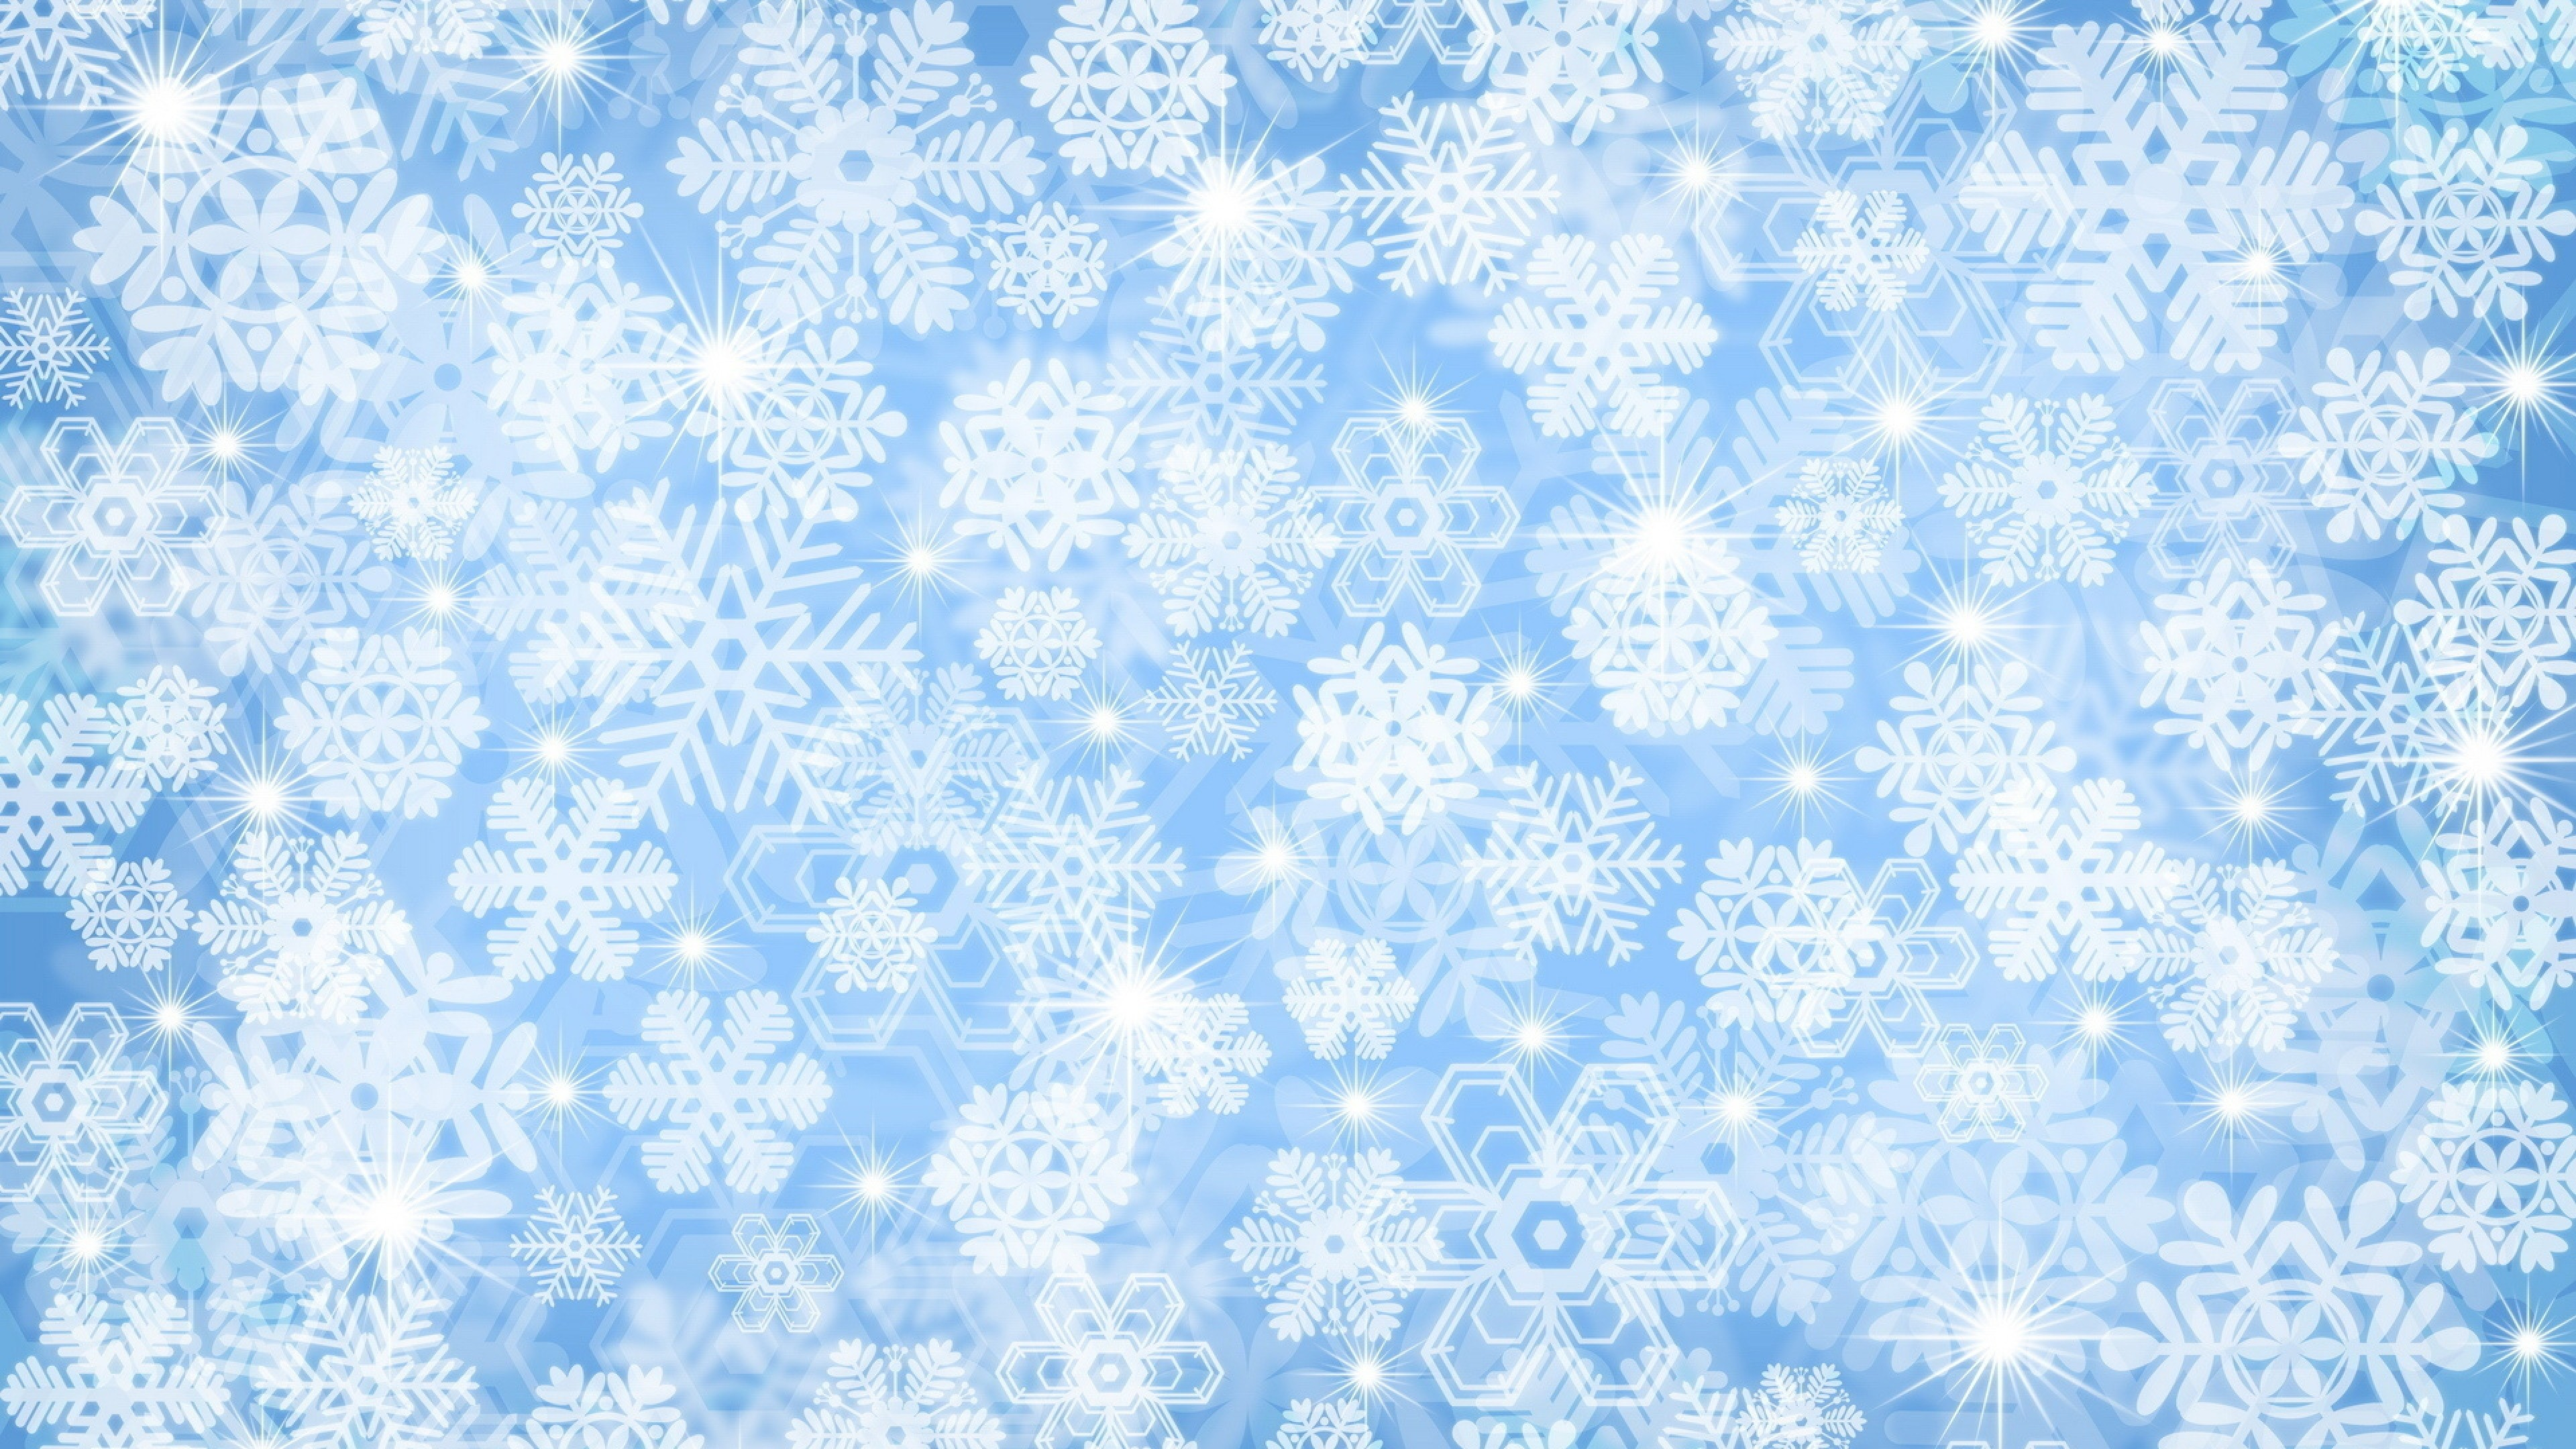 Res: 3840x2160, Snowflake Background